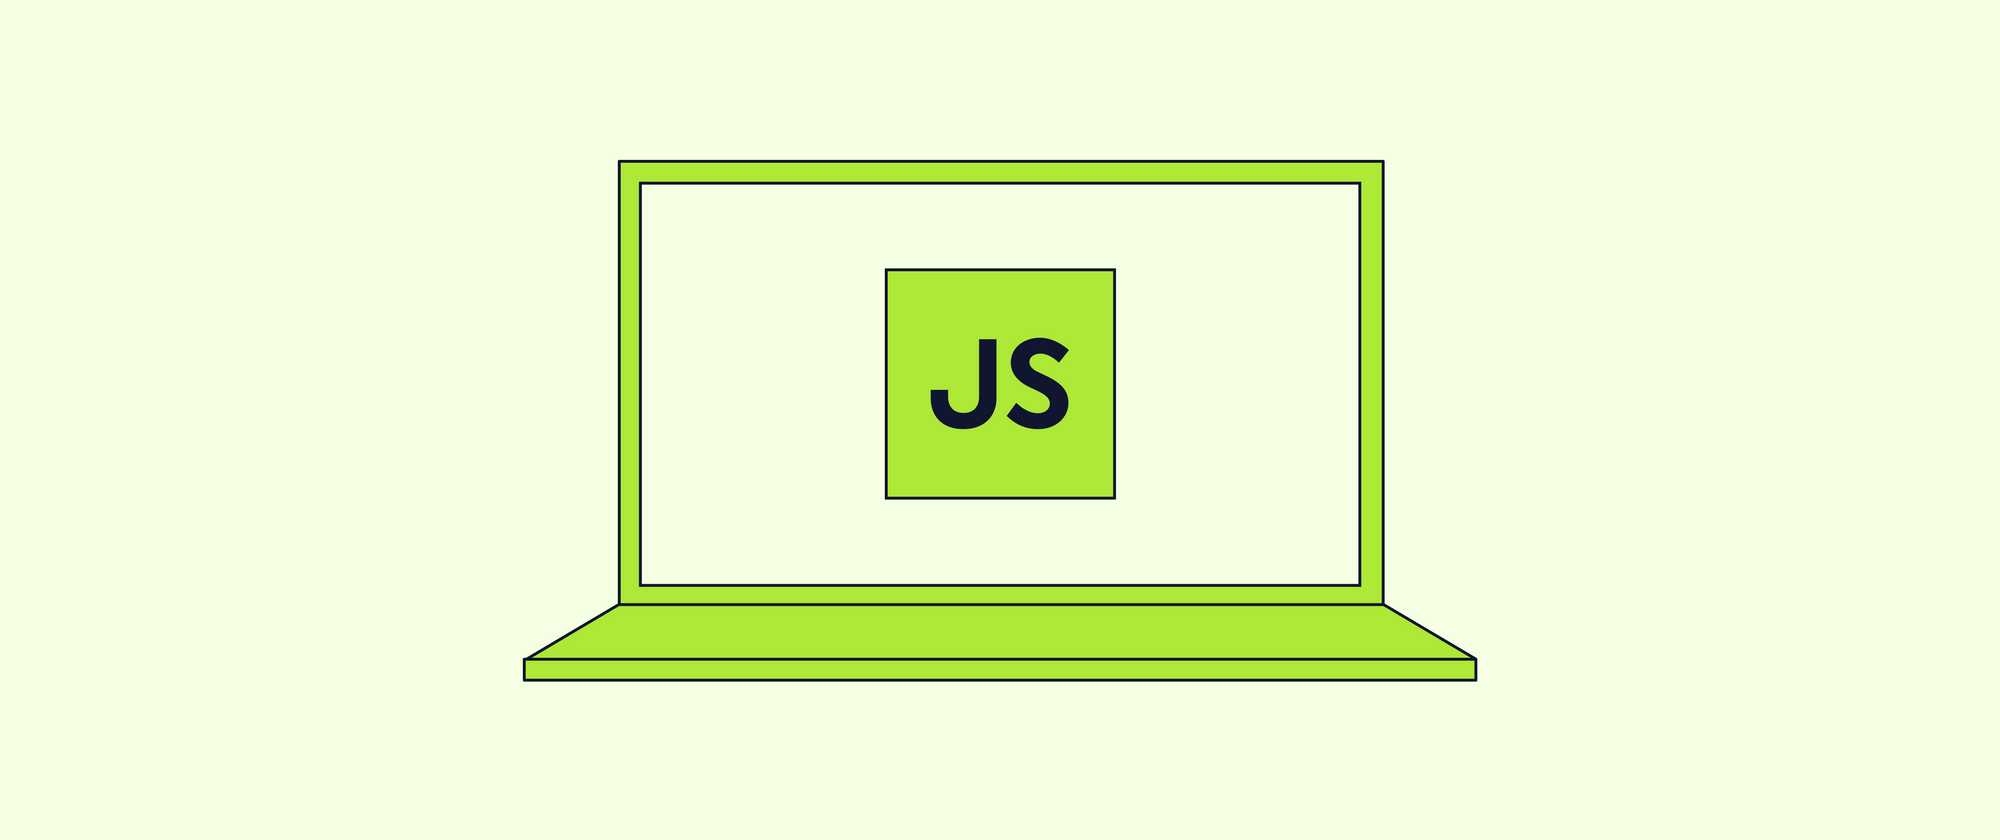 10 JavaScript code challenges for beginners